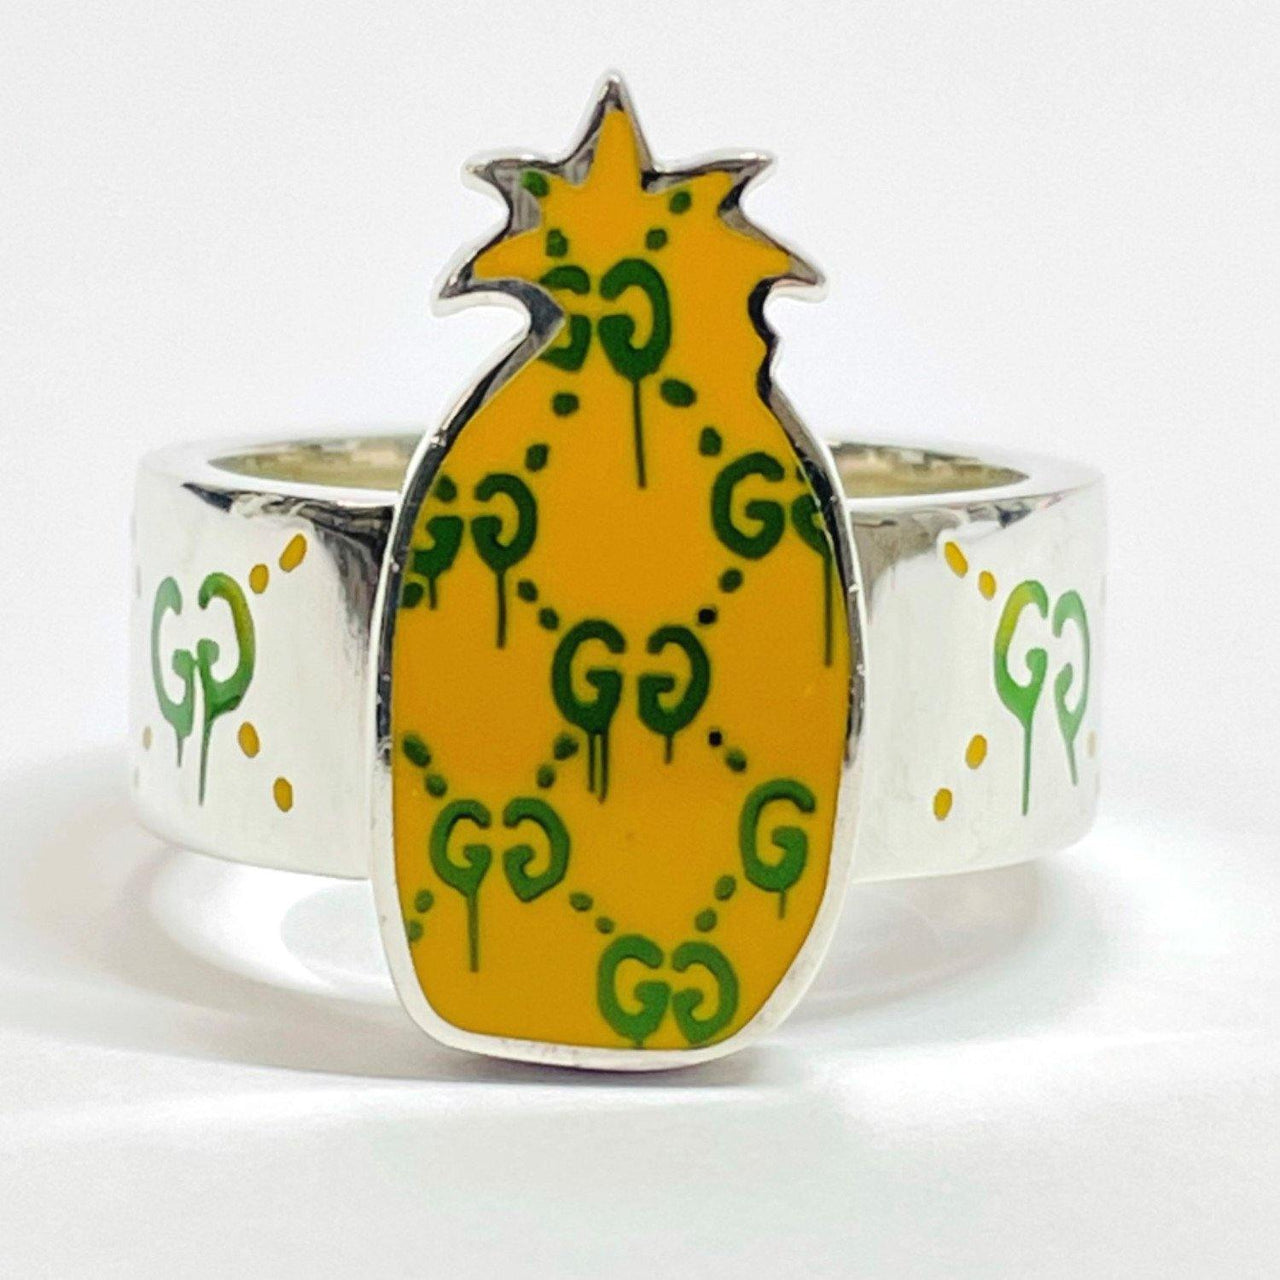 GUCCI Ring Ghost ring pineapple Silver925 19 Silver yellow mens Used - JP-BRANDS.com